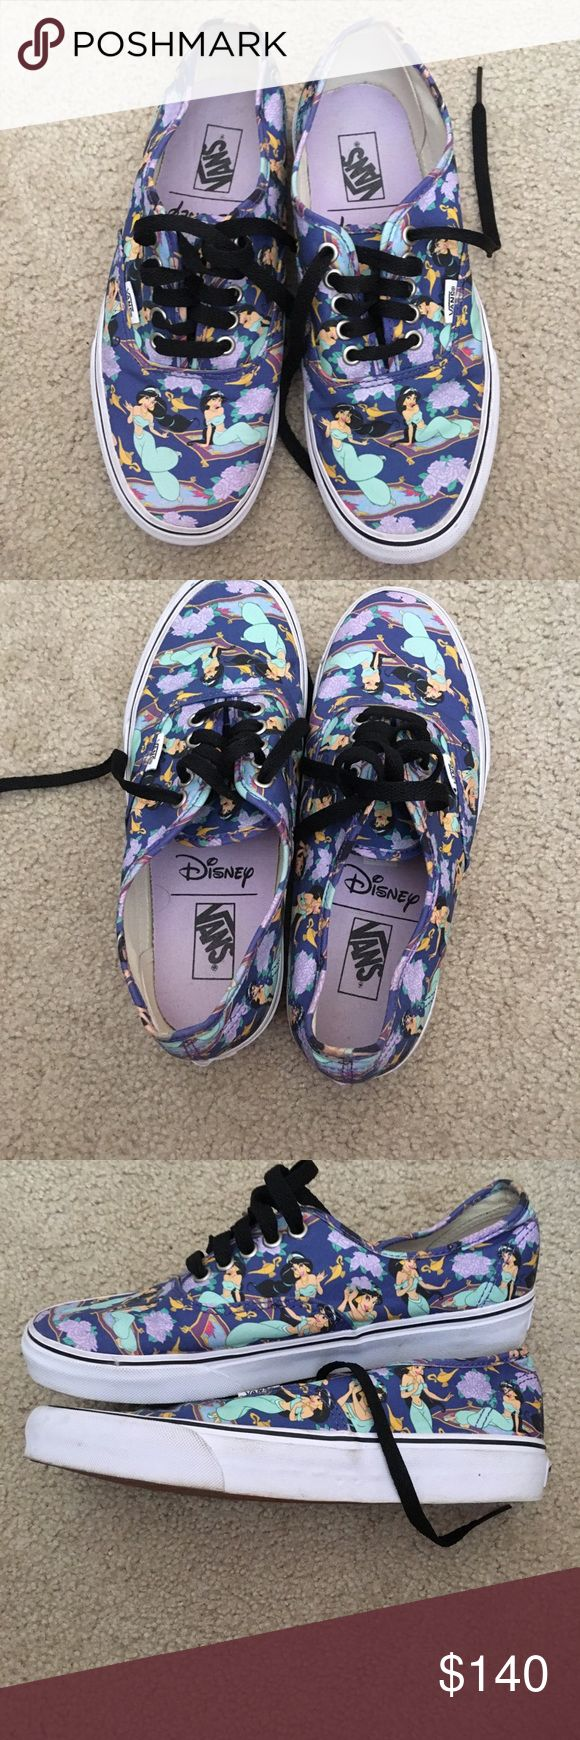 Disney Jasmine Vans Worn a few times. Mens 7.5, womens 9. Only selling because they no longer fit and I never got around to wearing them as much as I would have liked!🙁 Some marks throughout but nothing major. Reasonable offers welcomed, but please just keep in mind when sending over offers that these were limited edition and are no longer available! No trades. Vans Shoes Sneakers